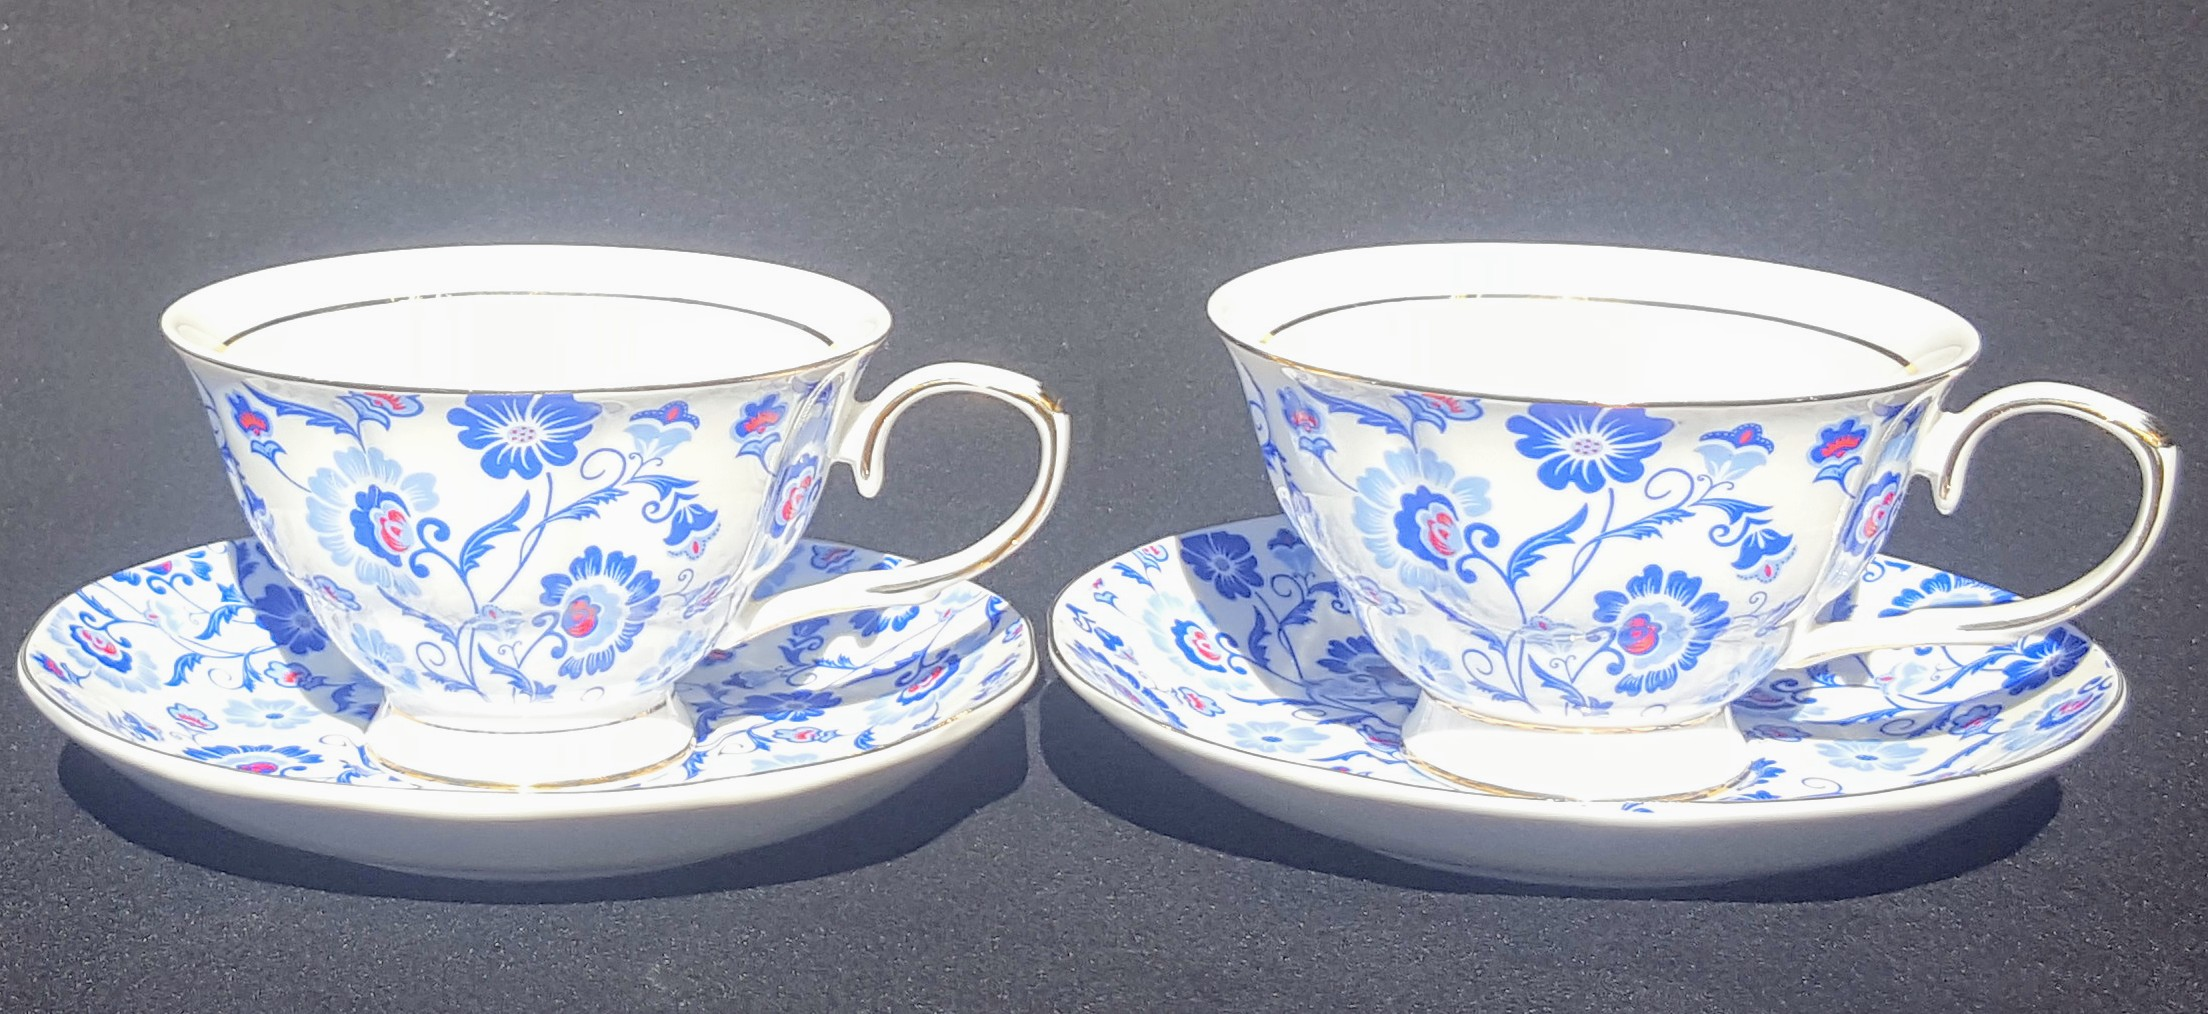 Sunshine Blue Sprays 2 cup & saucer set